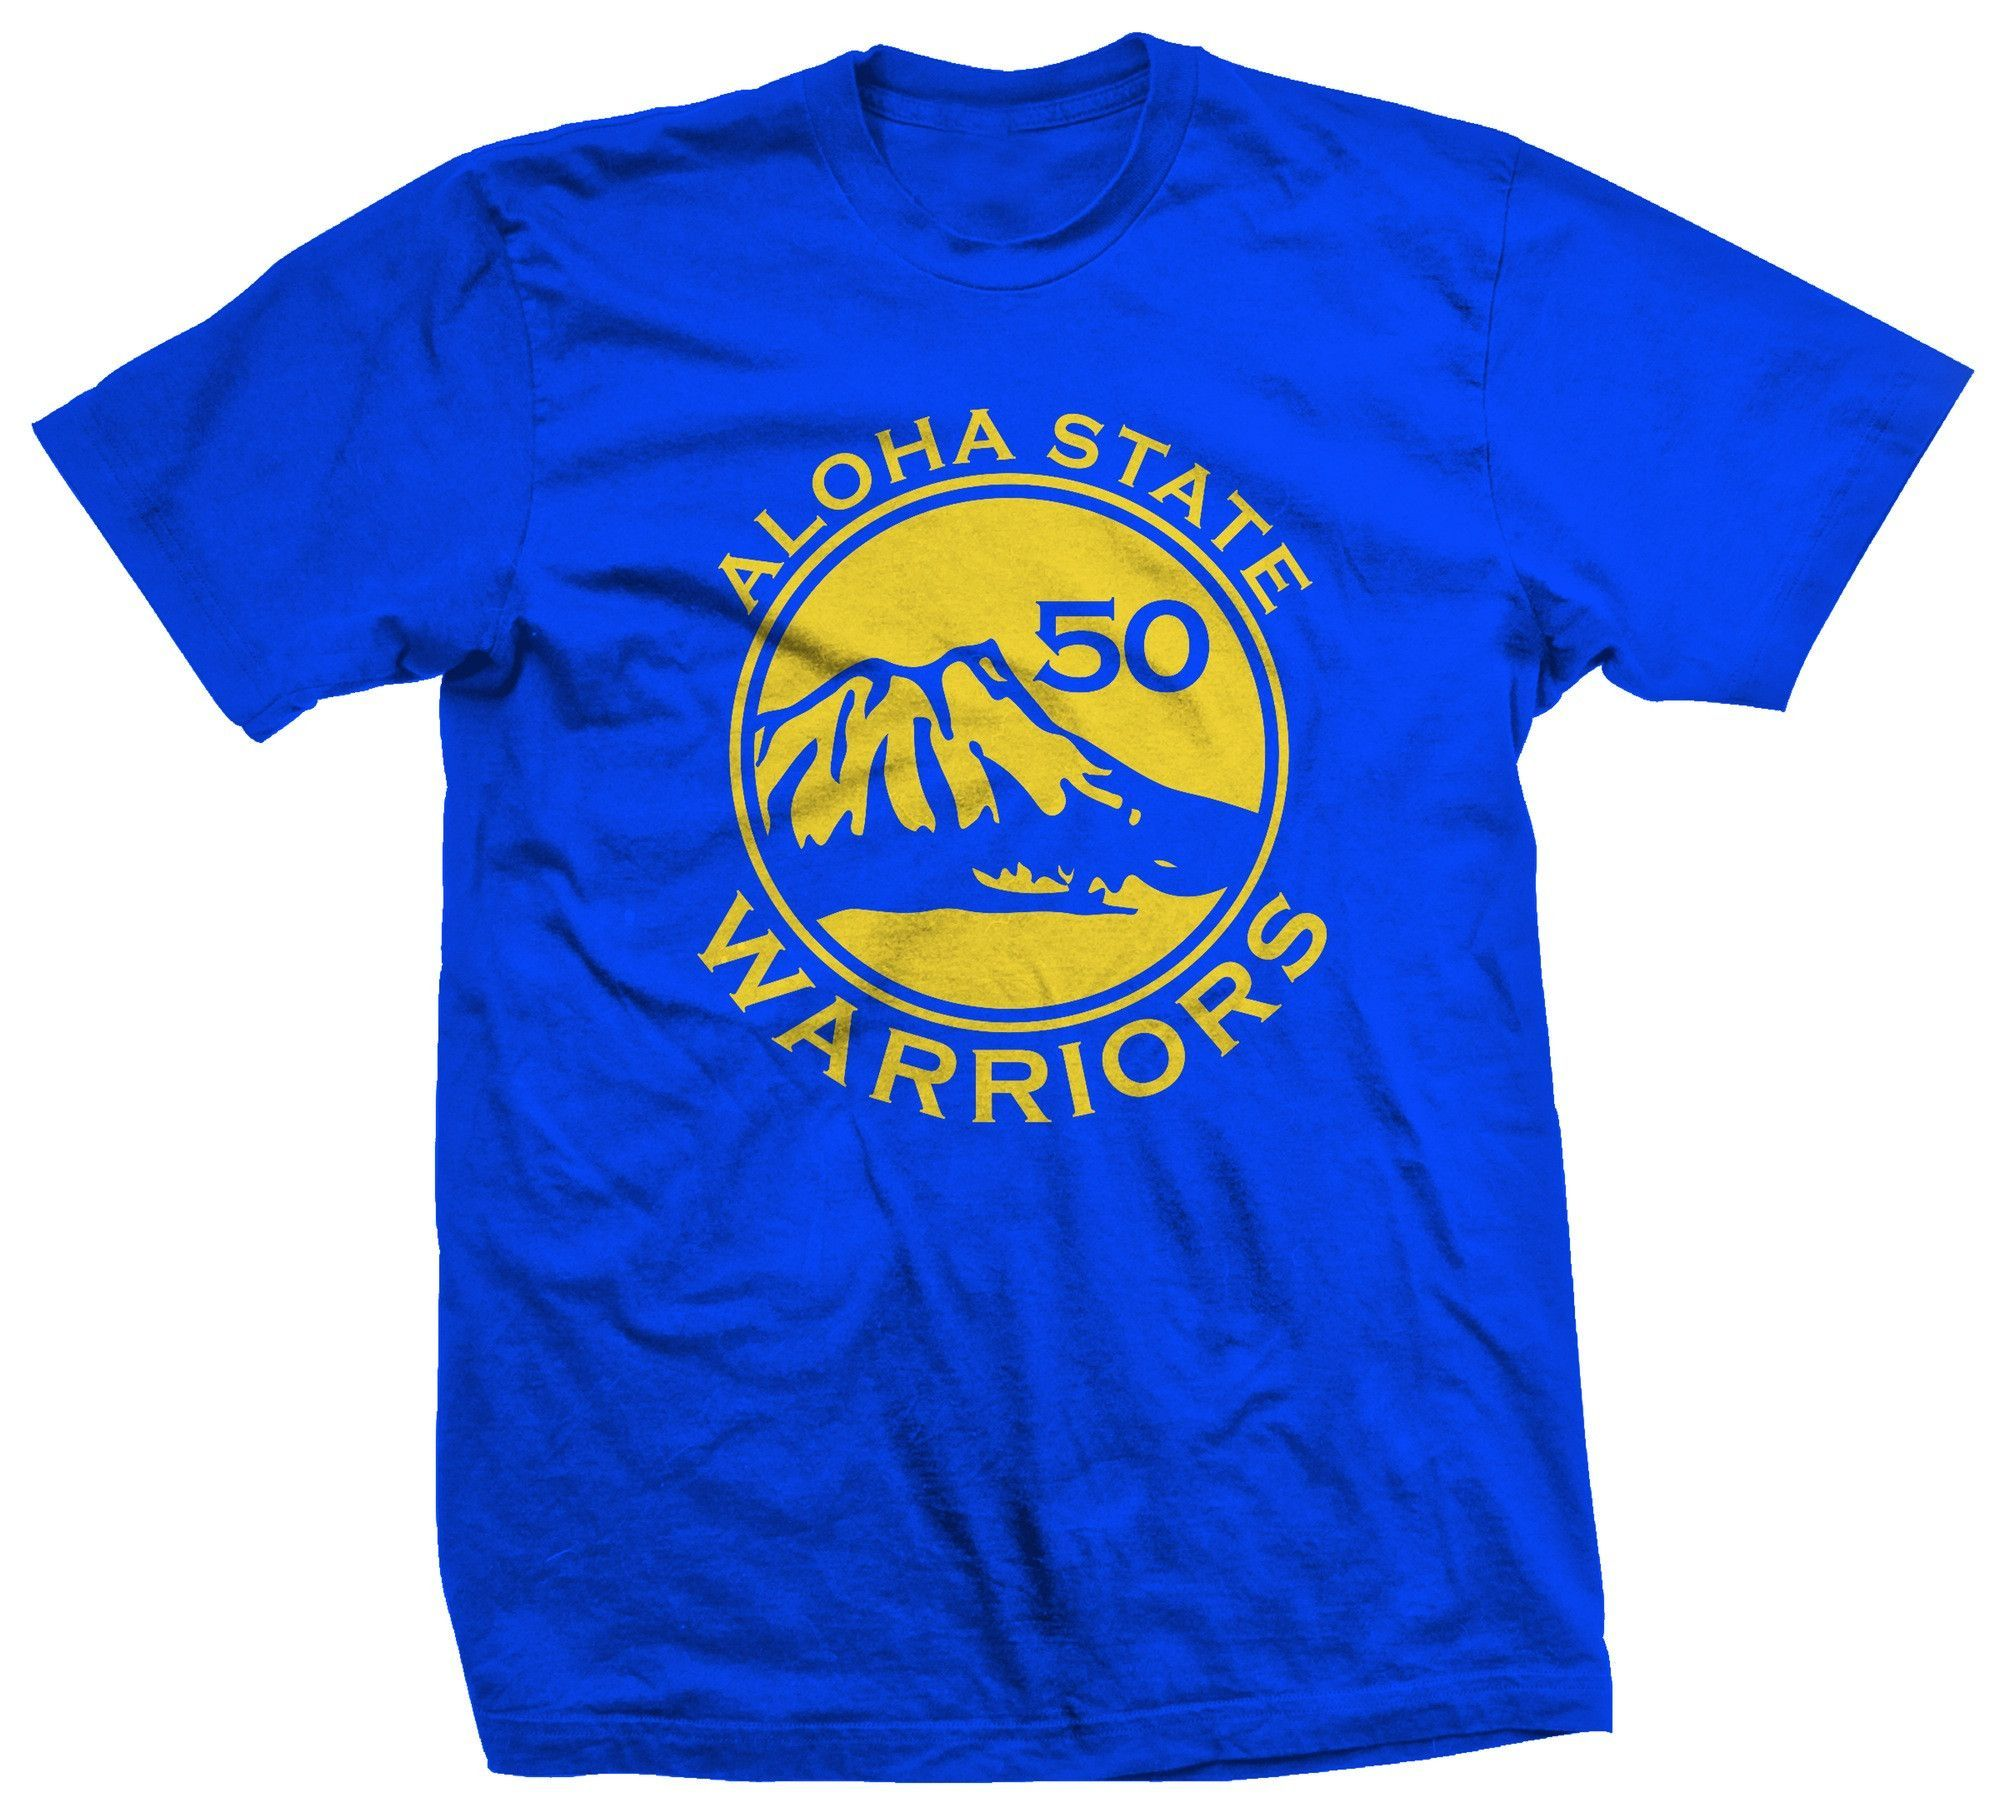 6c118c5a8ec 50th State of Mind Aloha State Warriors Mens T-Shirt - Leilanis Attic